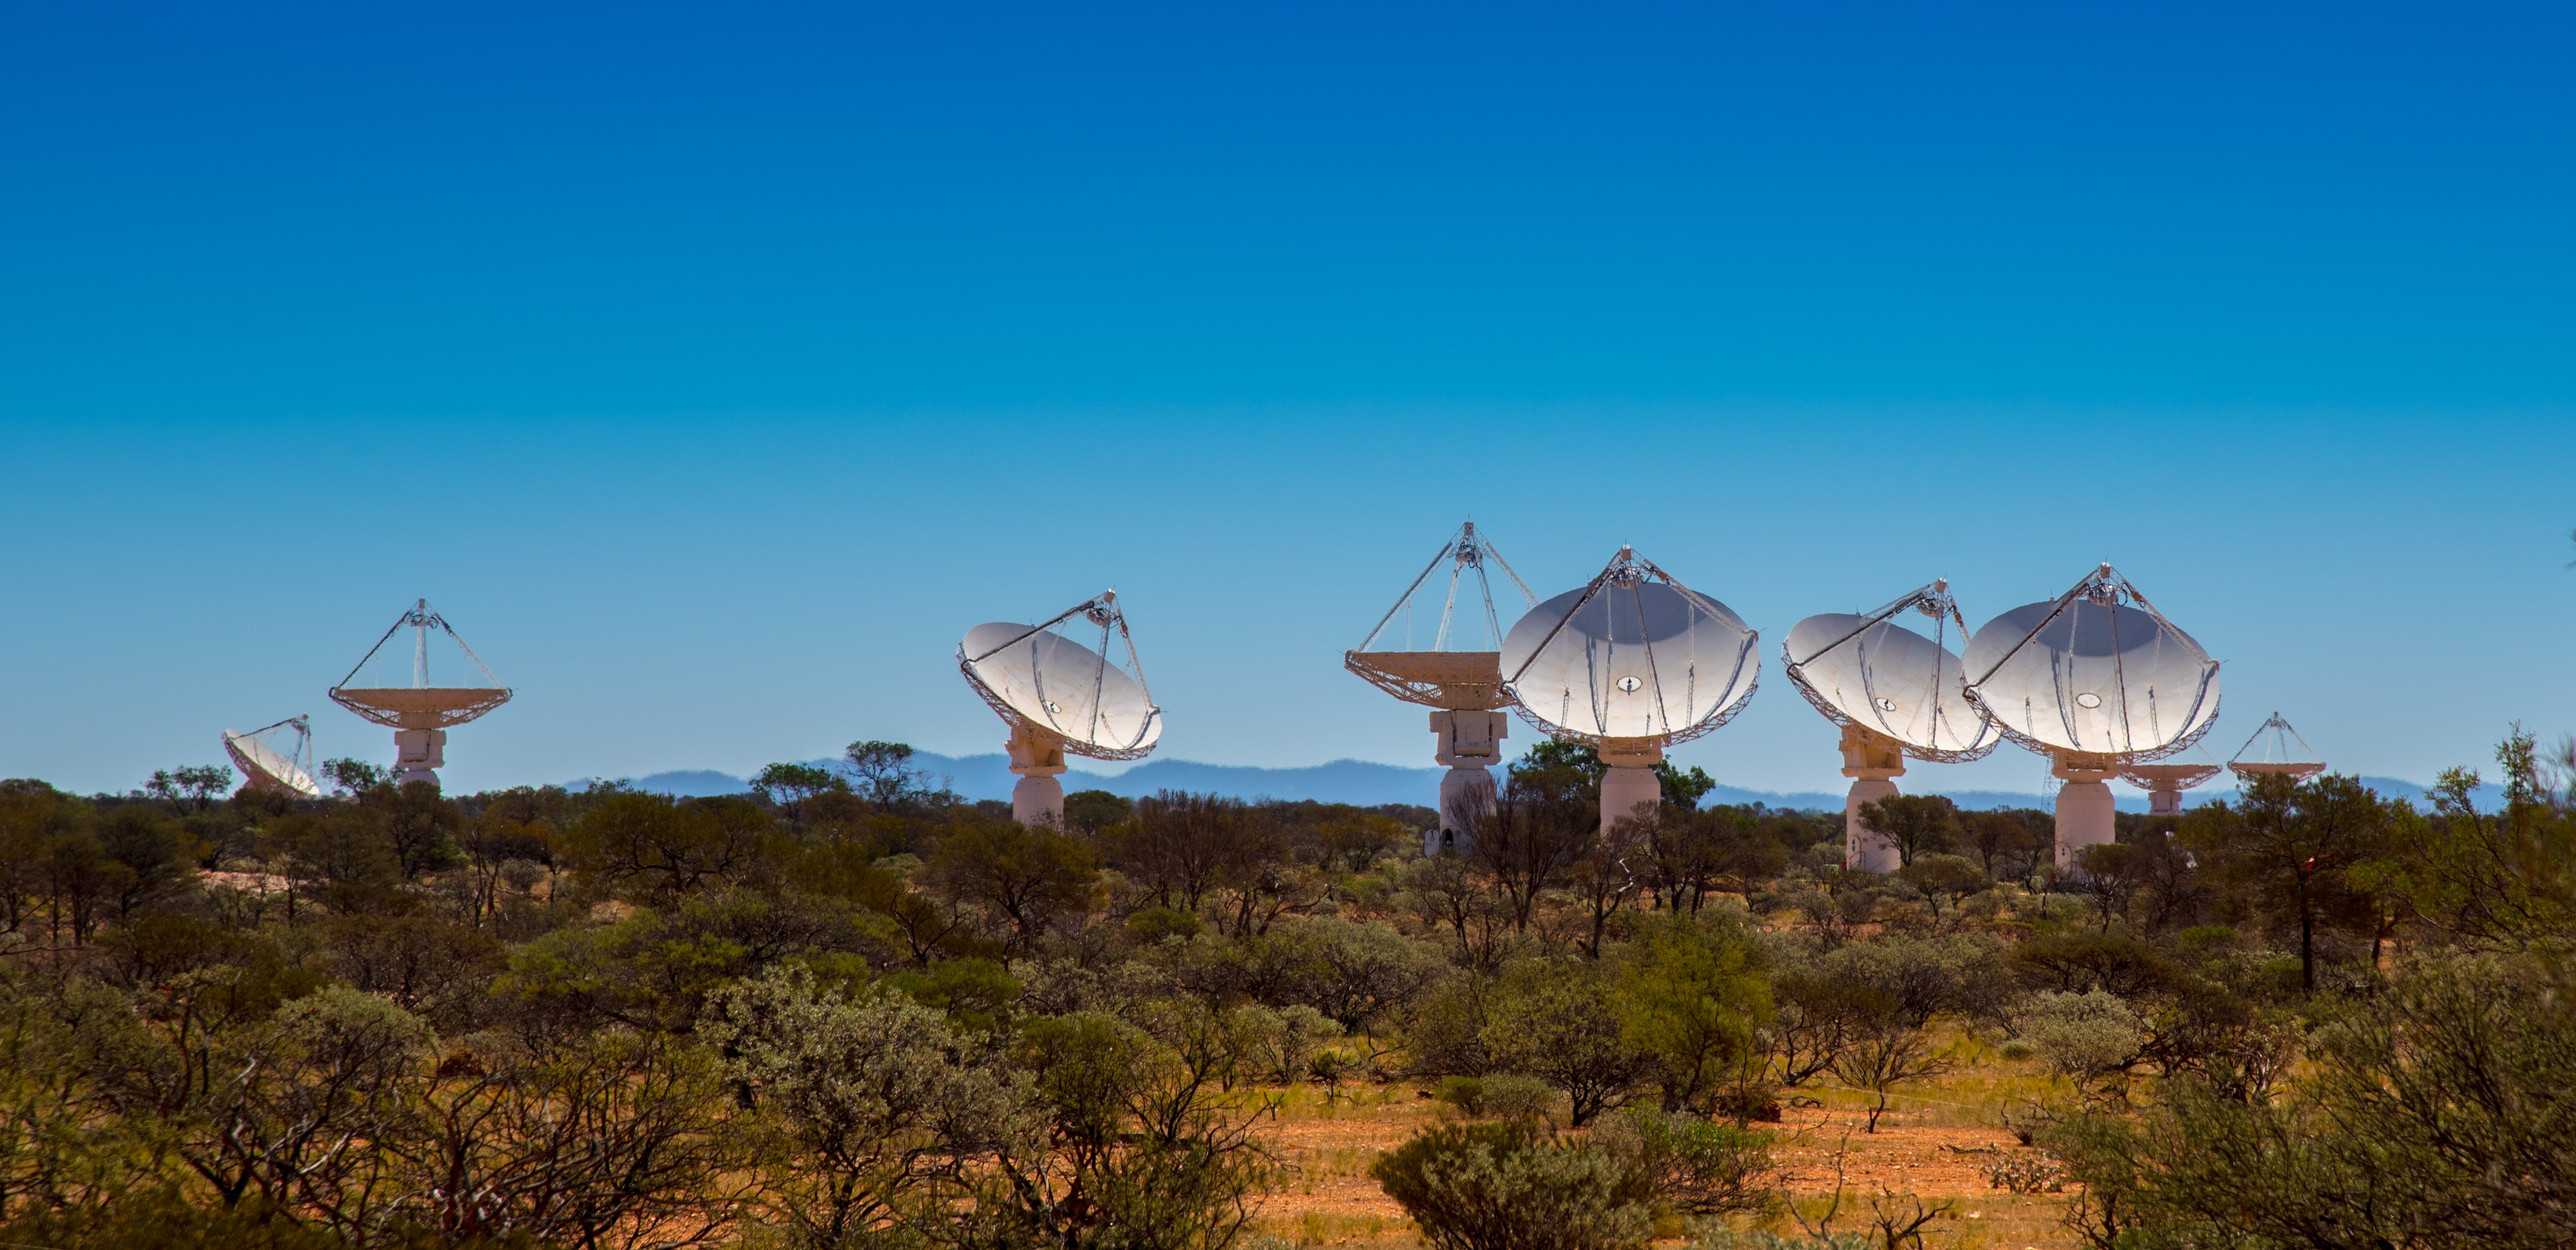 Australian Square Kilometre Array Pathfinder radio telescopes under a blue sky with vegeatation growing in and around the site.